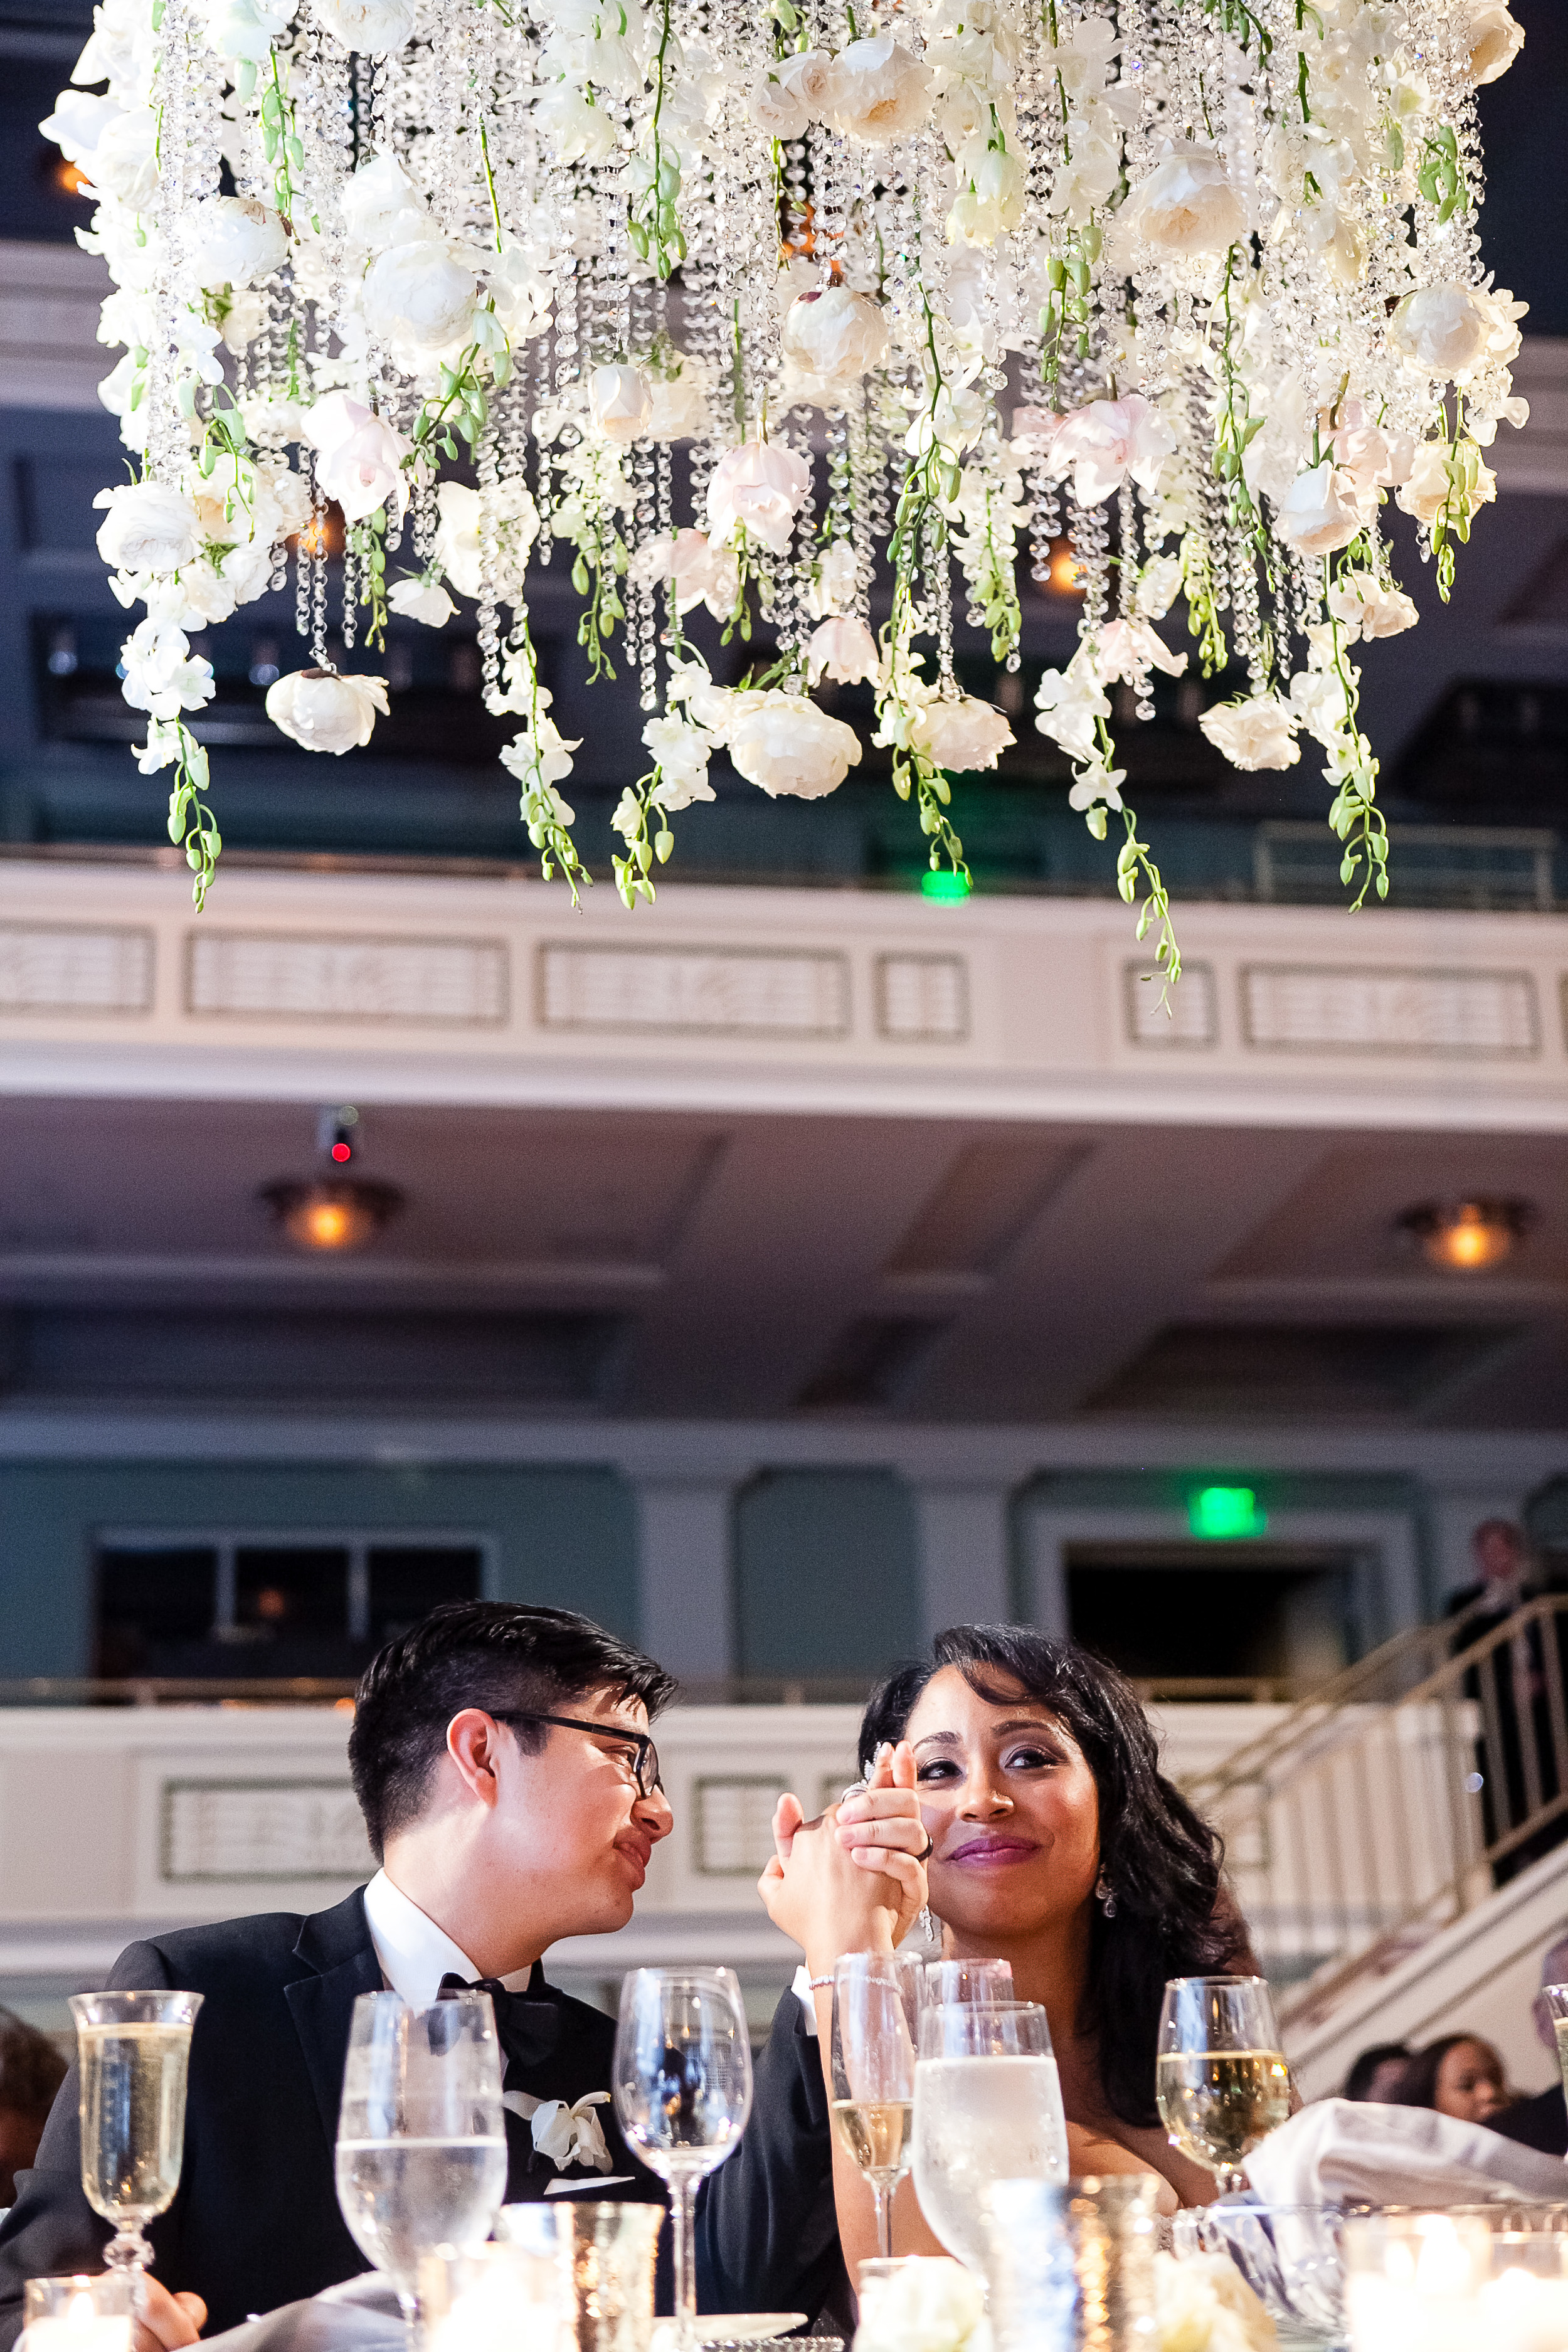 Groom_Looks_At_Bride_During_Toast_in_Nashville